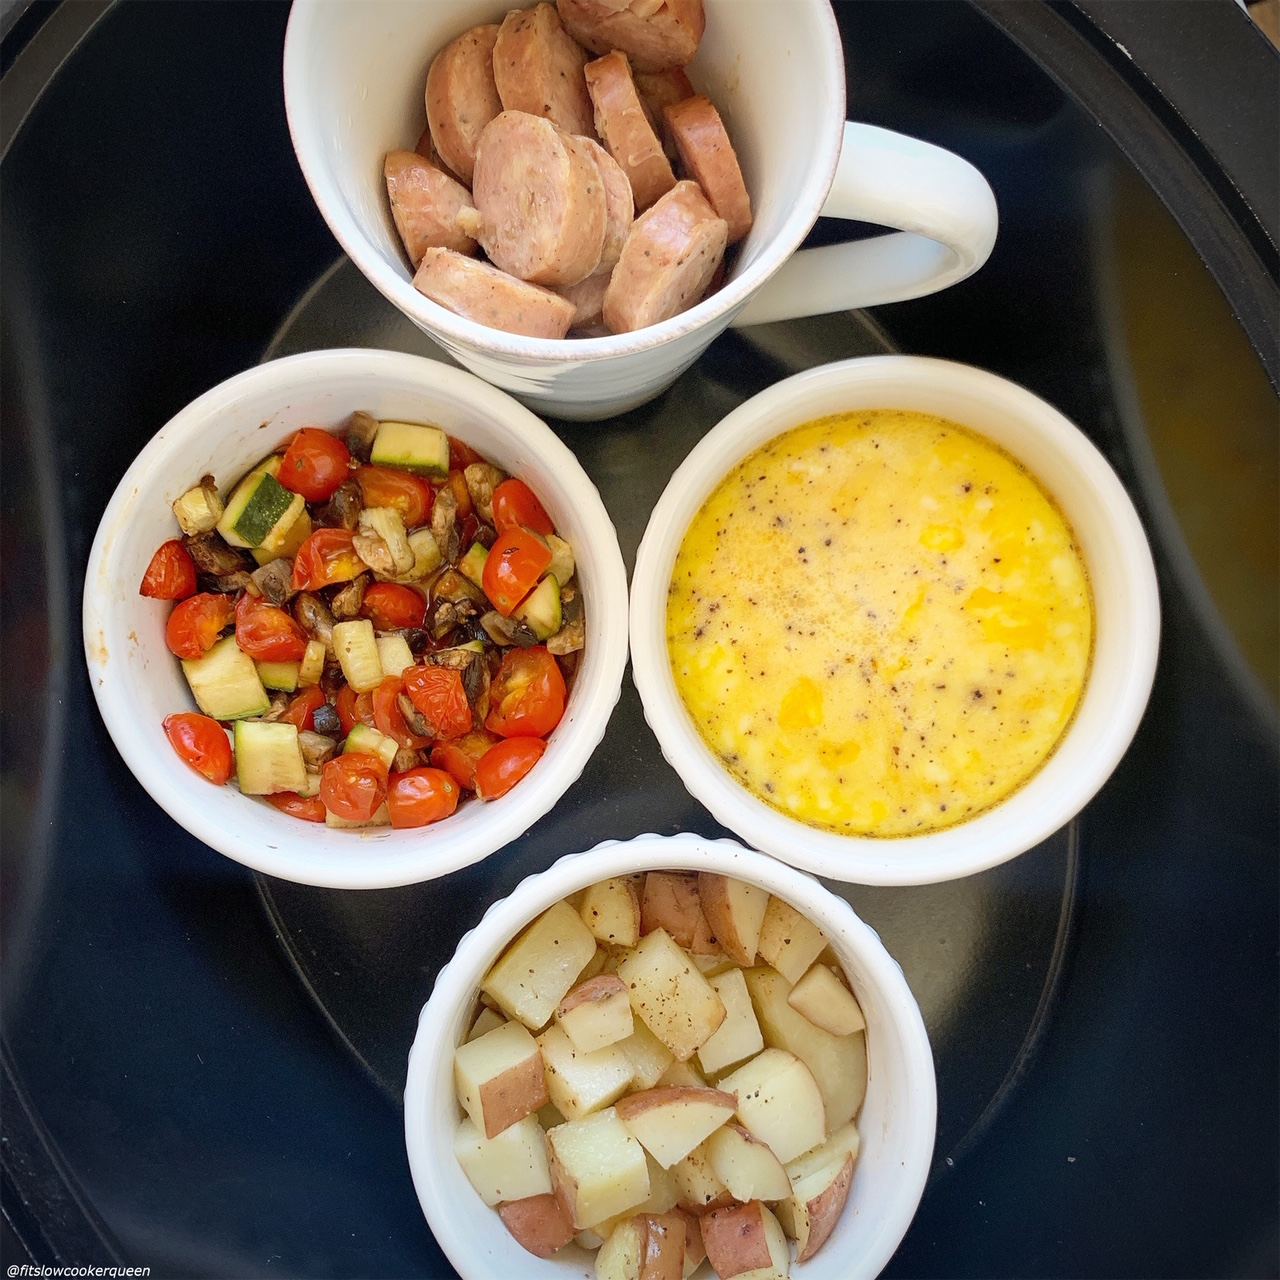 cooked food in coffee mugs & ramekins to cook for Slow Cooker Healthy Fry Up Breakfast (Paleo,Whole30)